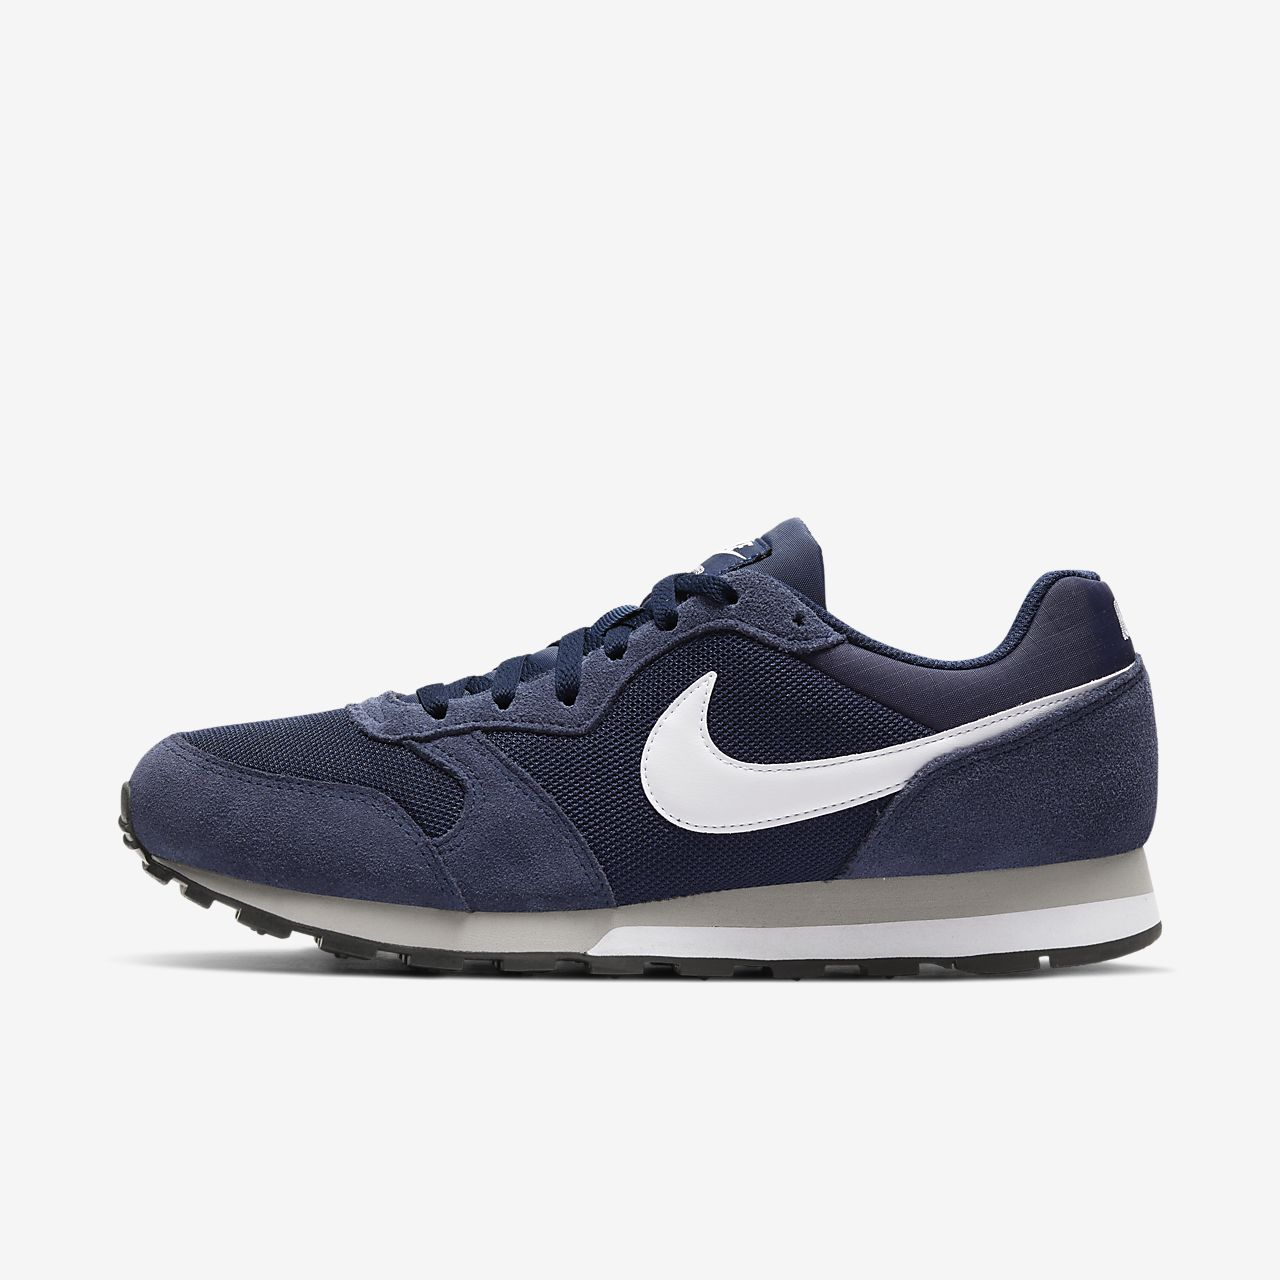 best loved 99448 3fdf8 ... Chaussure Nike MD Runner 2 pour Homme